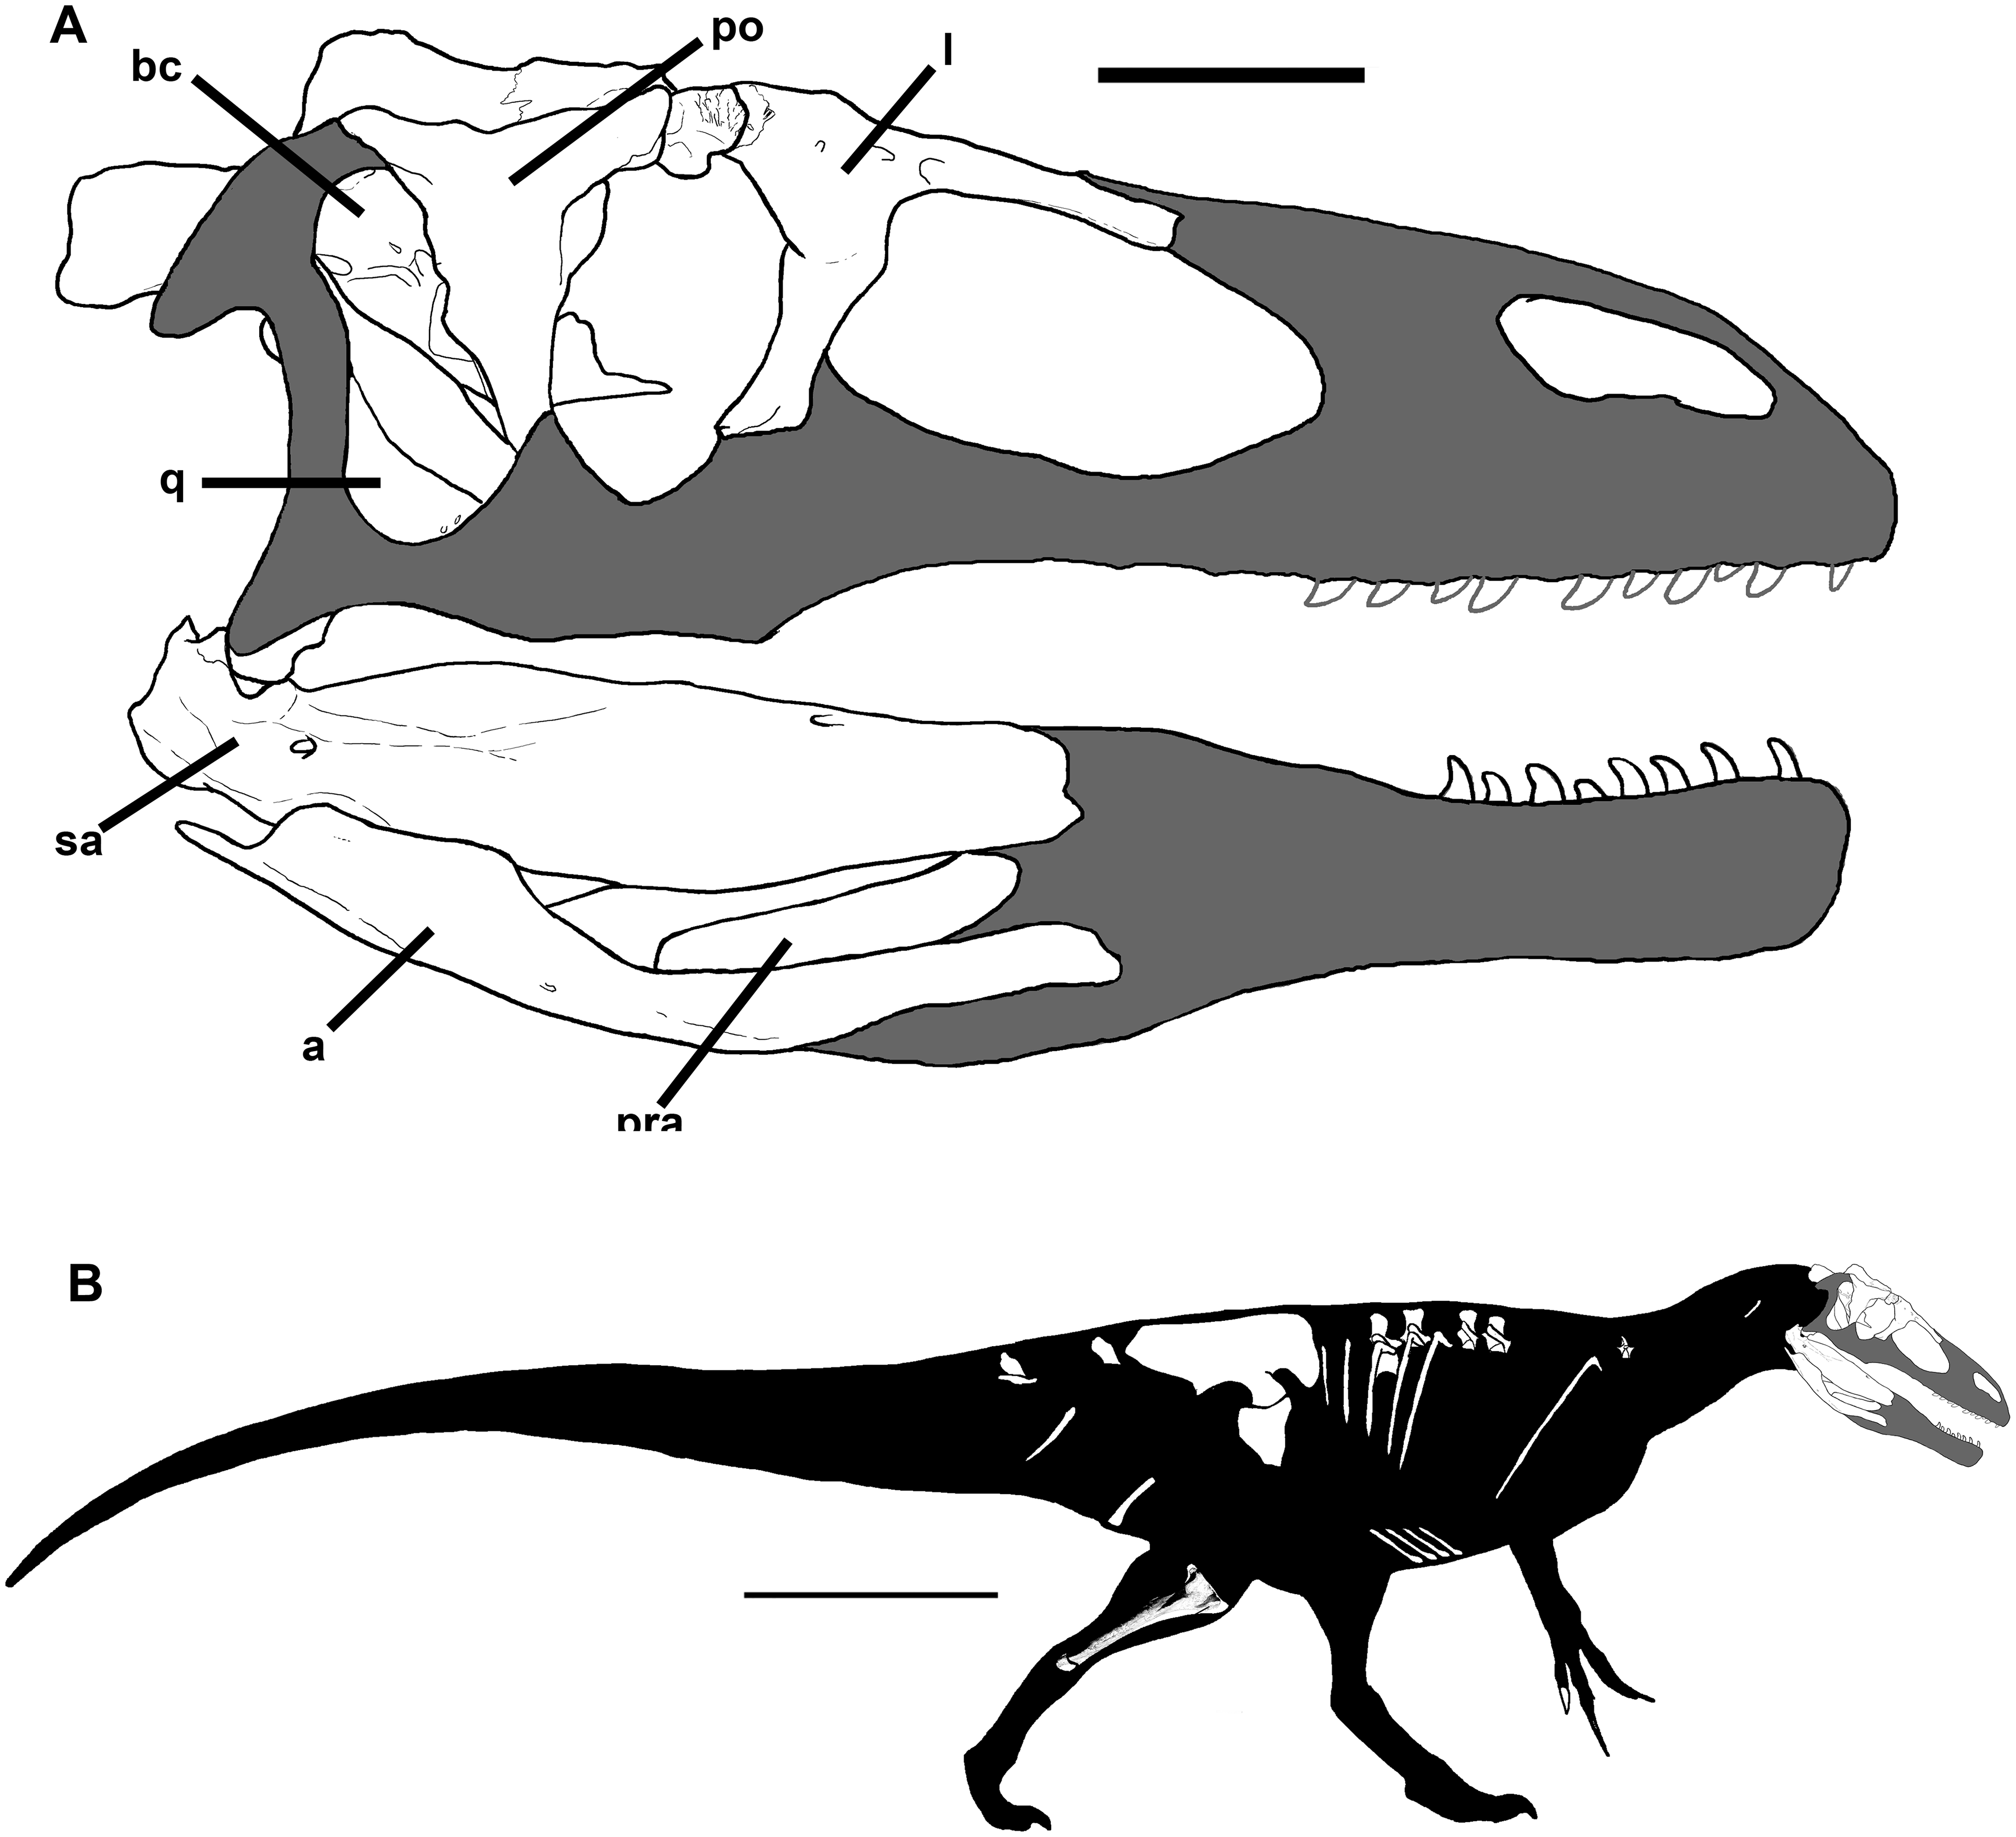 Skull reconstruction of Murusraptor barrosaensis, MCF-PVPH-411. B) Body reconstruction of Murusraptor barrosaensis, MCF-PVPH-411. Both illustrations show recovered elements in white. Scale bars: A = 10 cm, B = 1 m.